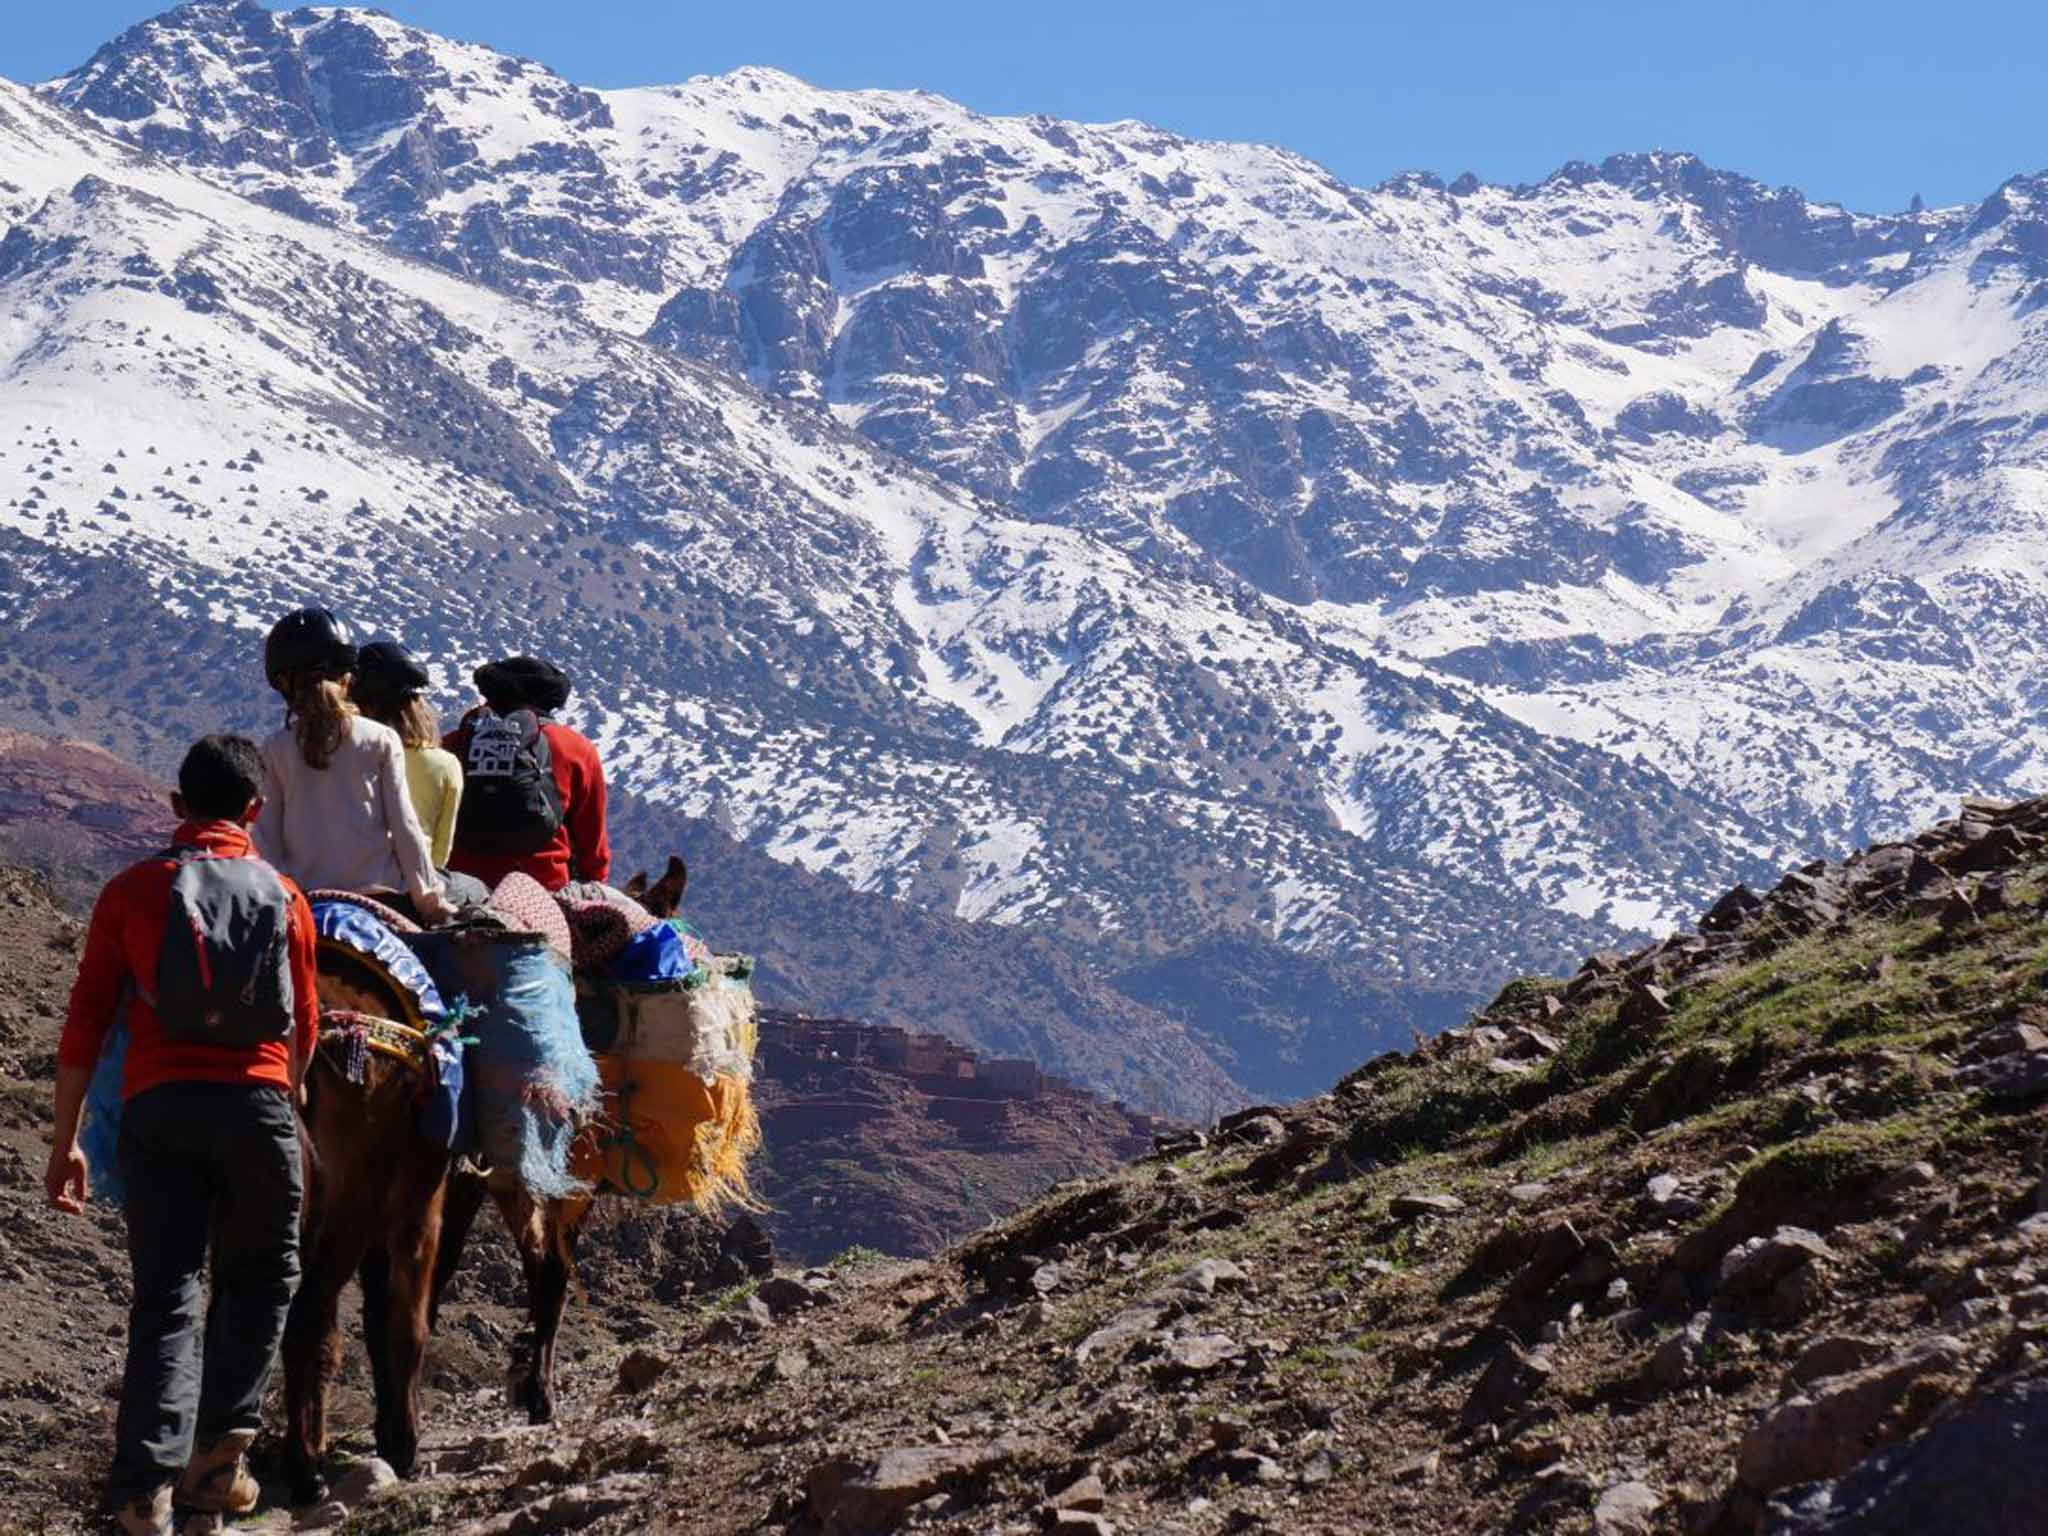 The Atlas Mountains Trek and Imlil valley via Desert 3 days 2 nights combined From Marrakech